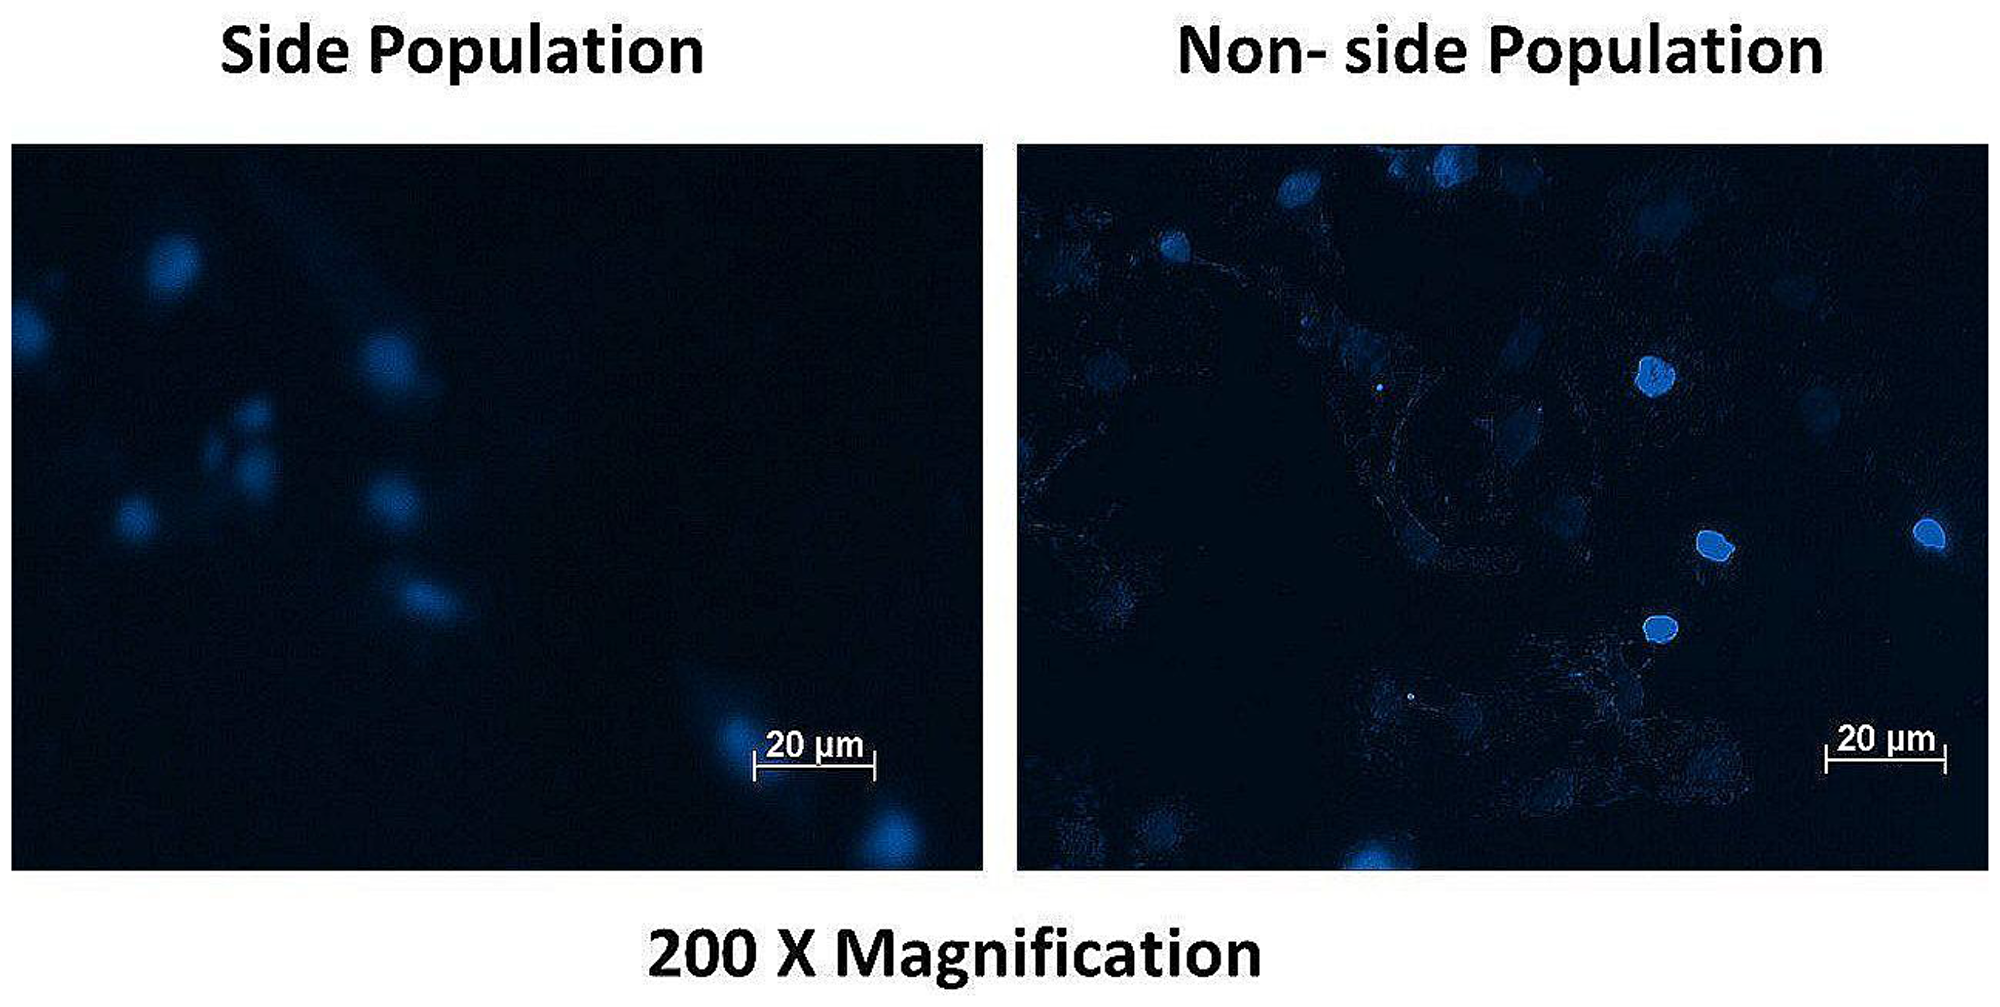 Fluorescence microscopy of the side and non-side population after staining with the dye Hoechst 33342 showing high fluorescence intensity (+++) in the non-side population of cells and a low fluorescence intensity (+) in the side population cells.